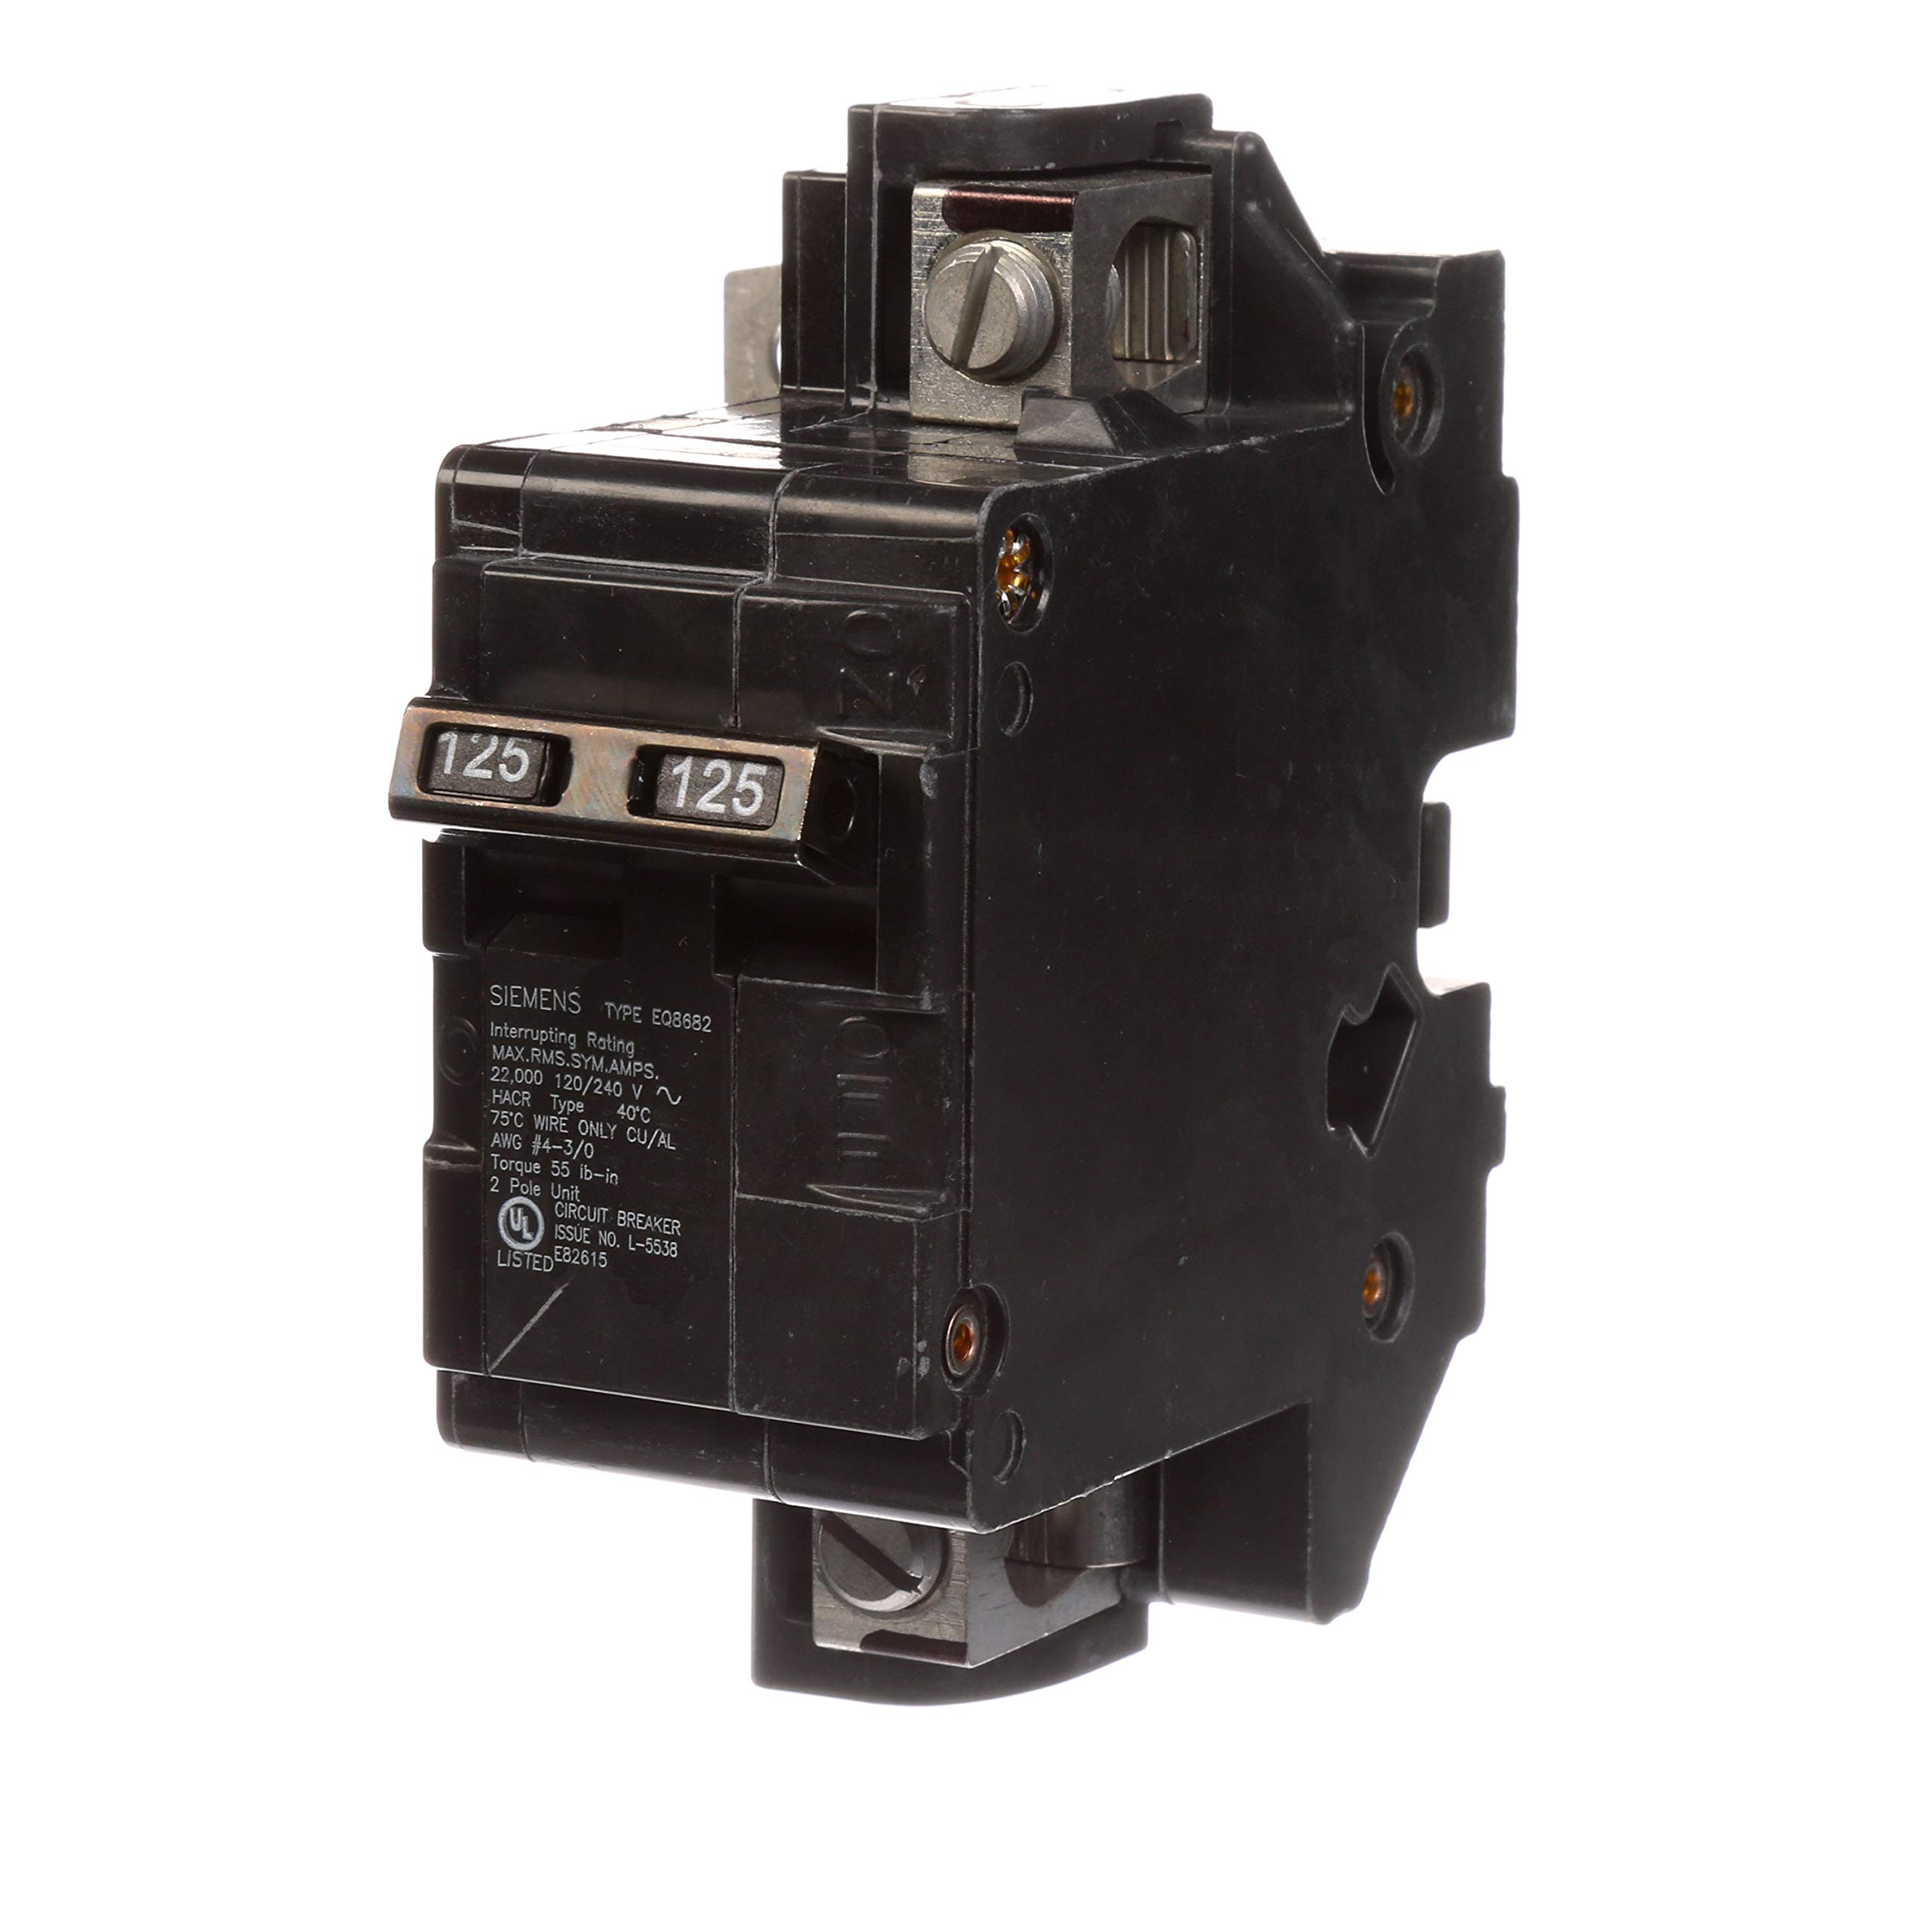 Siemens MBK125A 125-Amp Main Circuit Breaker for Use in Ultimate Type Load Centers by Siemens Energy Automation Inc